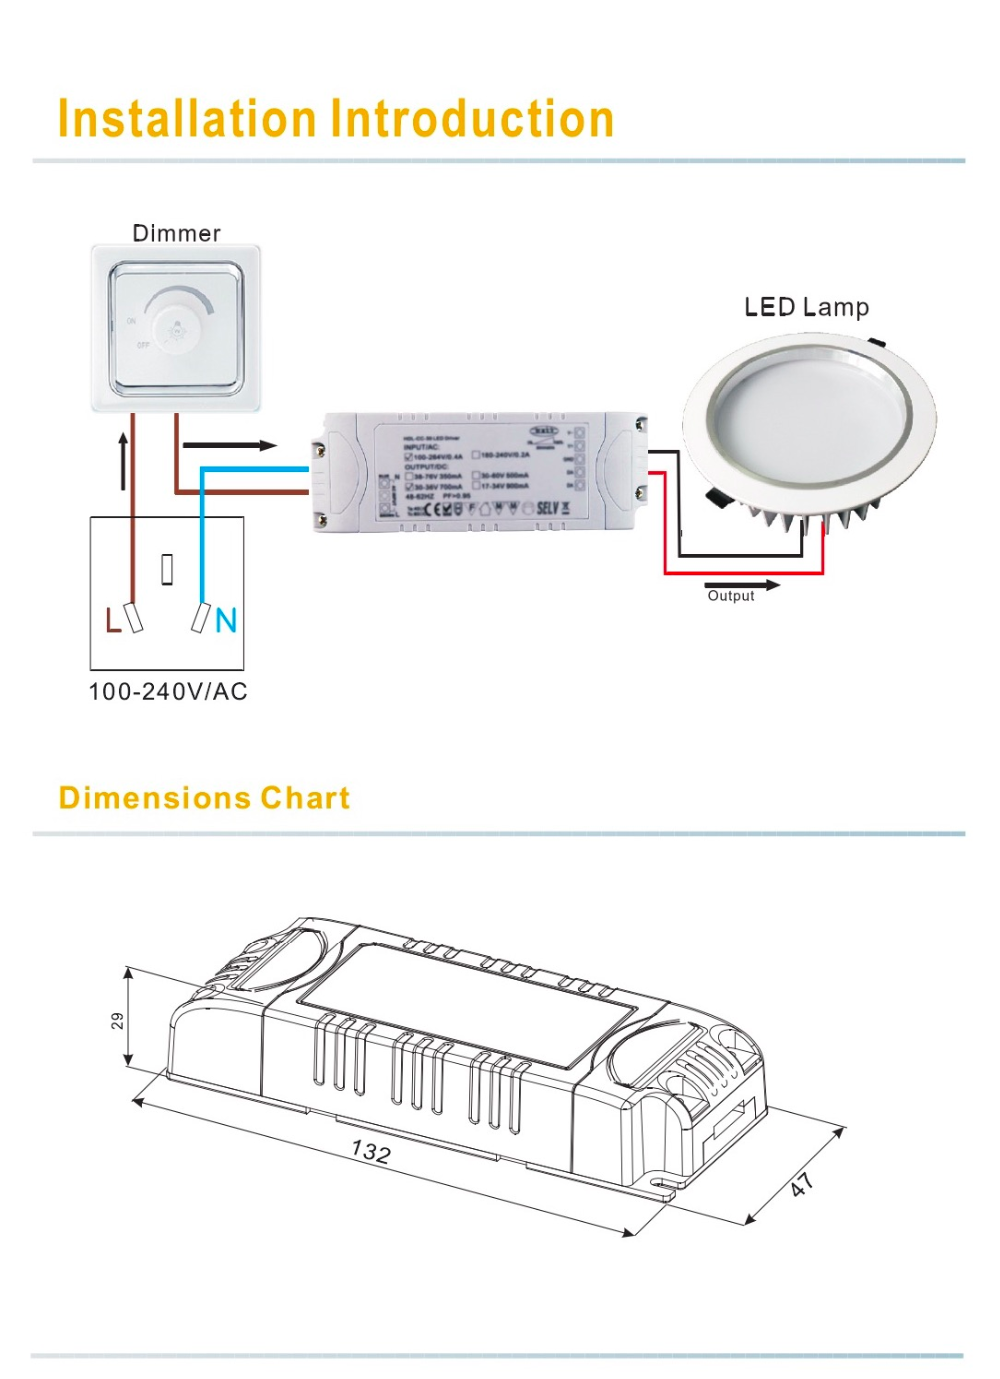 Constant Current 1500mA 40W Triac dimmable LED driver